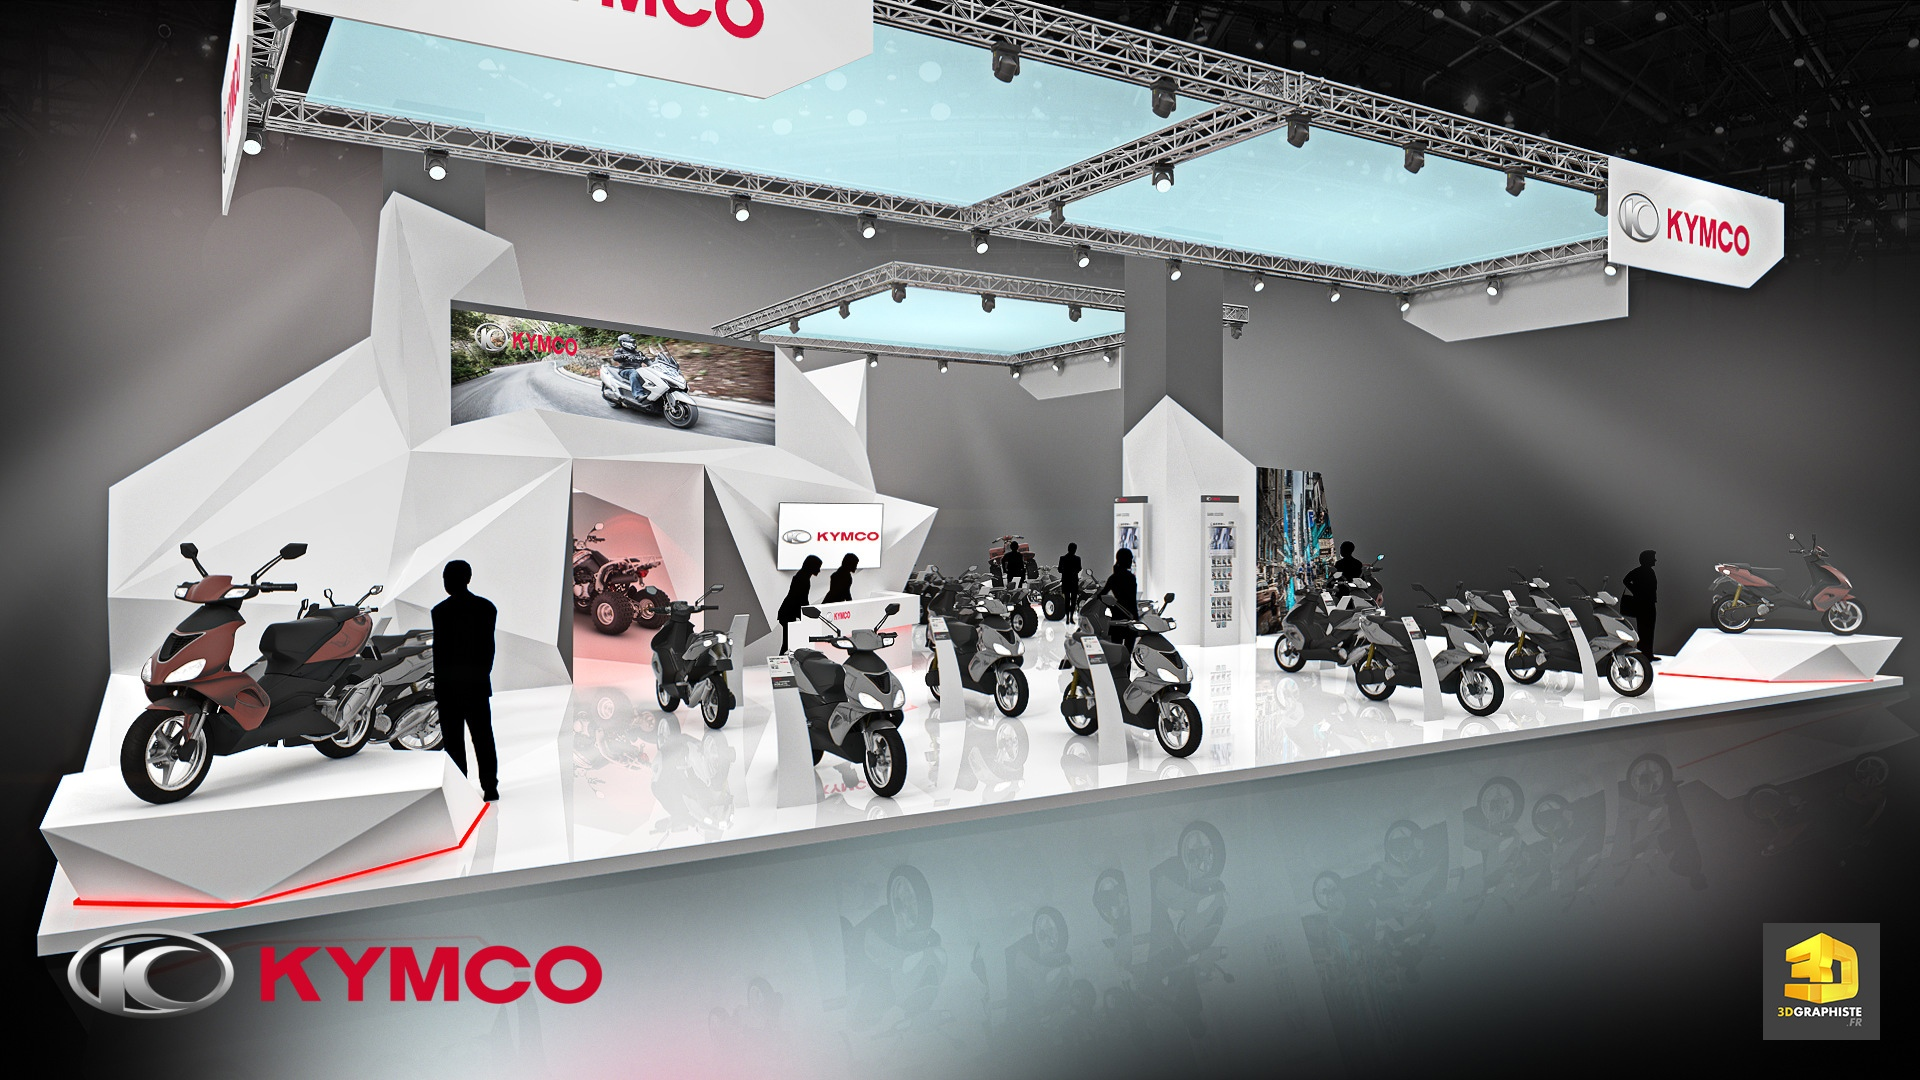 Stand kymco salon de la moto du scooter et du quad 2015 for A new creation salon